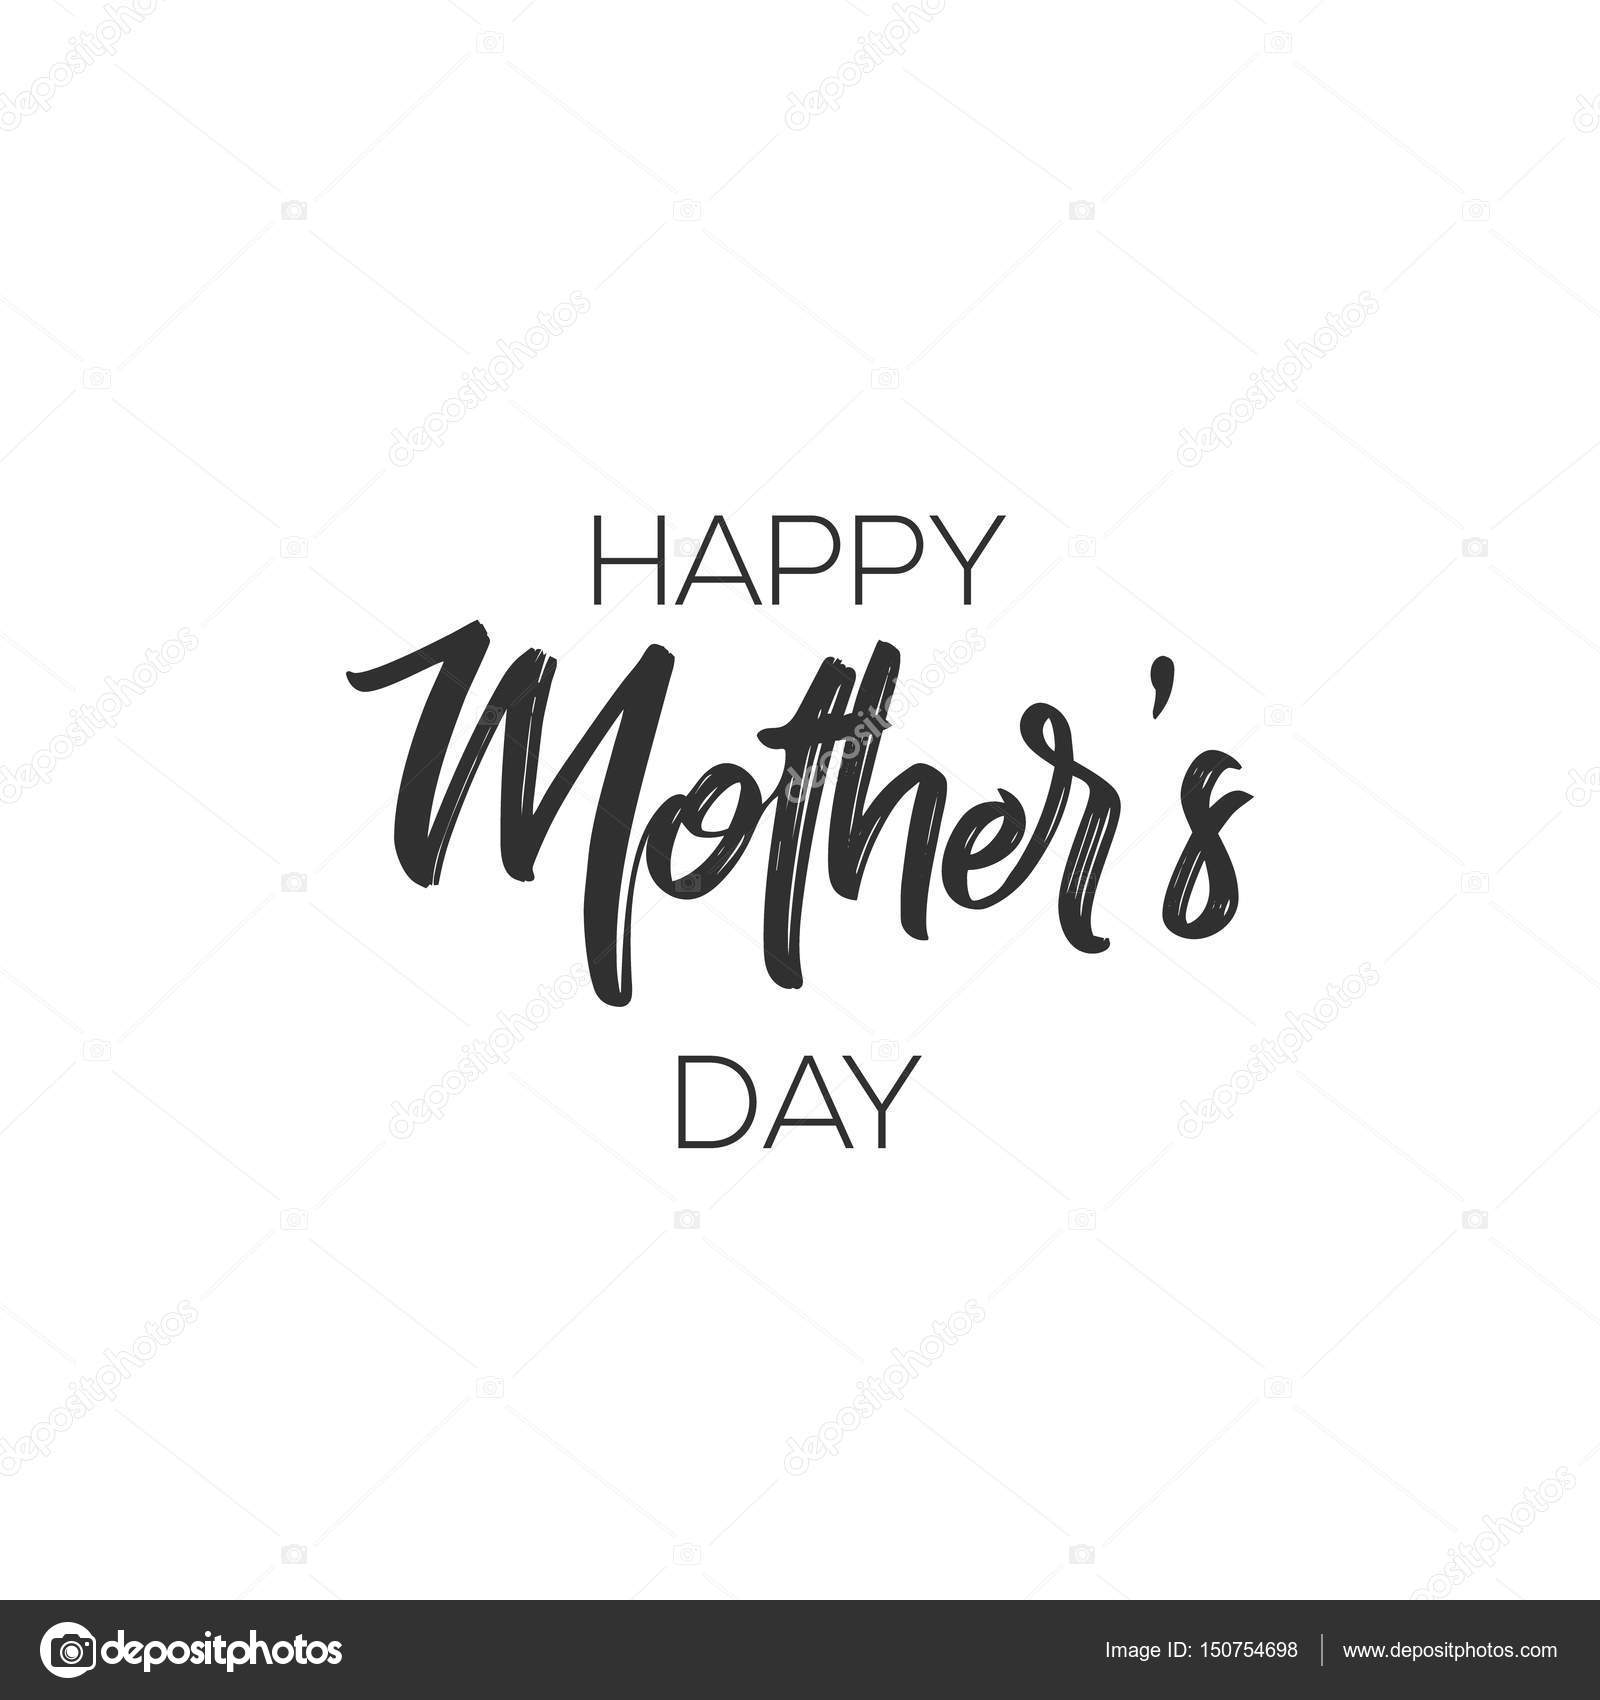 Happy Mothers Day Calligraphy Background. Design for flyer, card ...